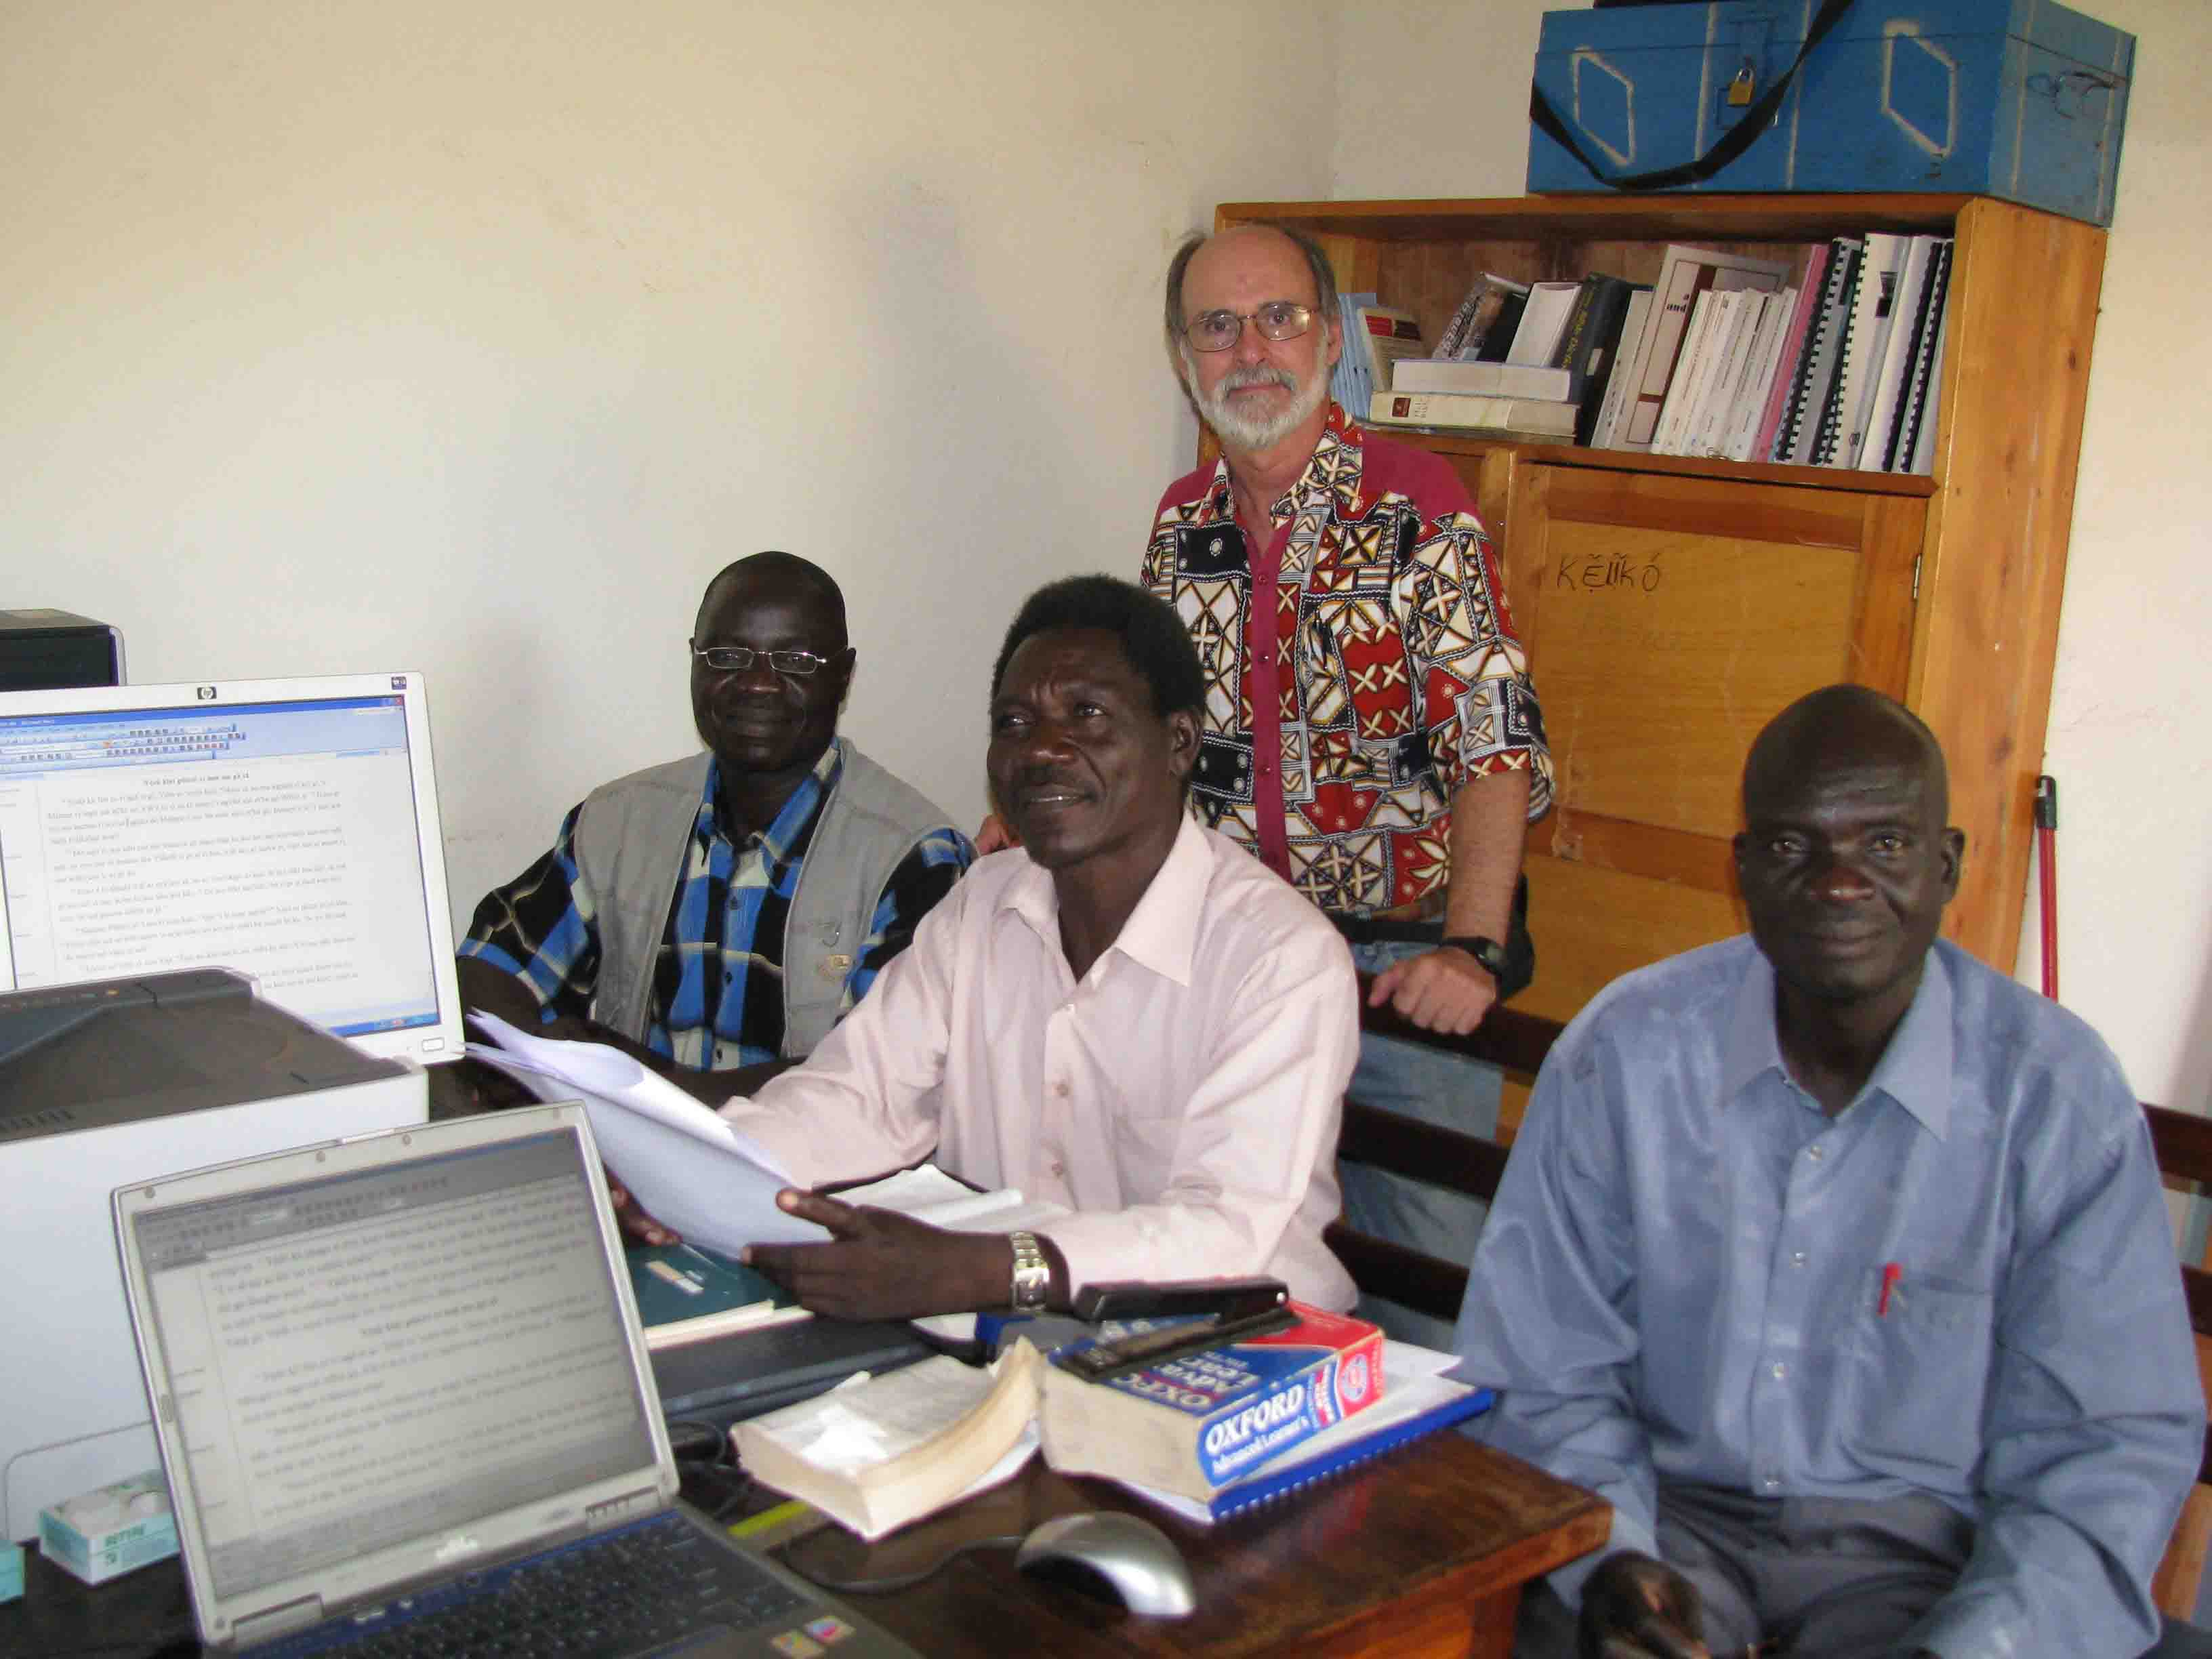 Consultant Wes Ringer helps check the Book of John with the translation team